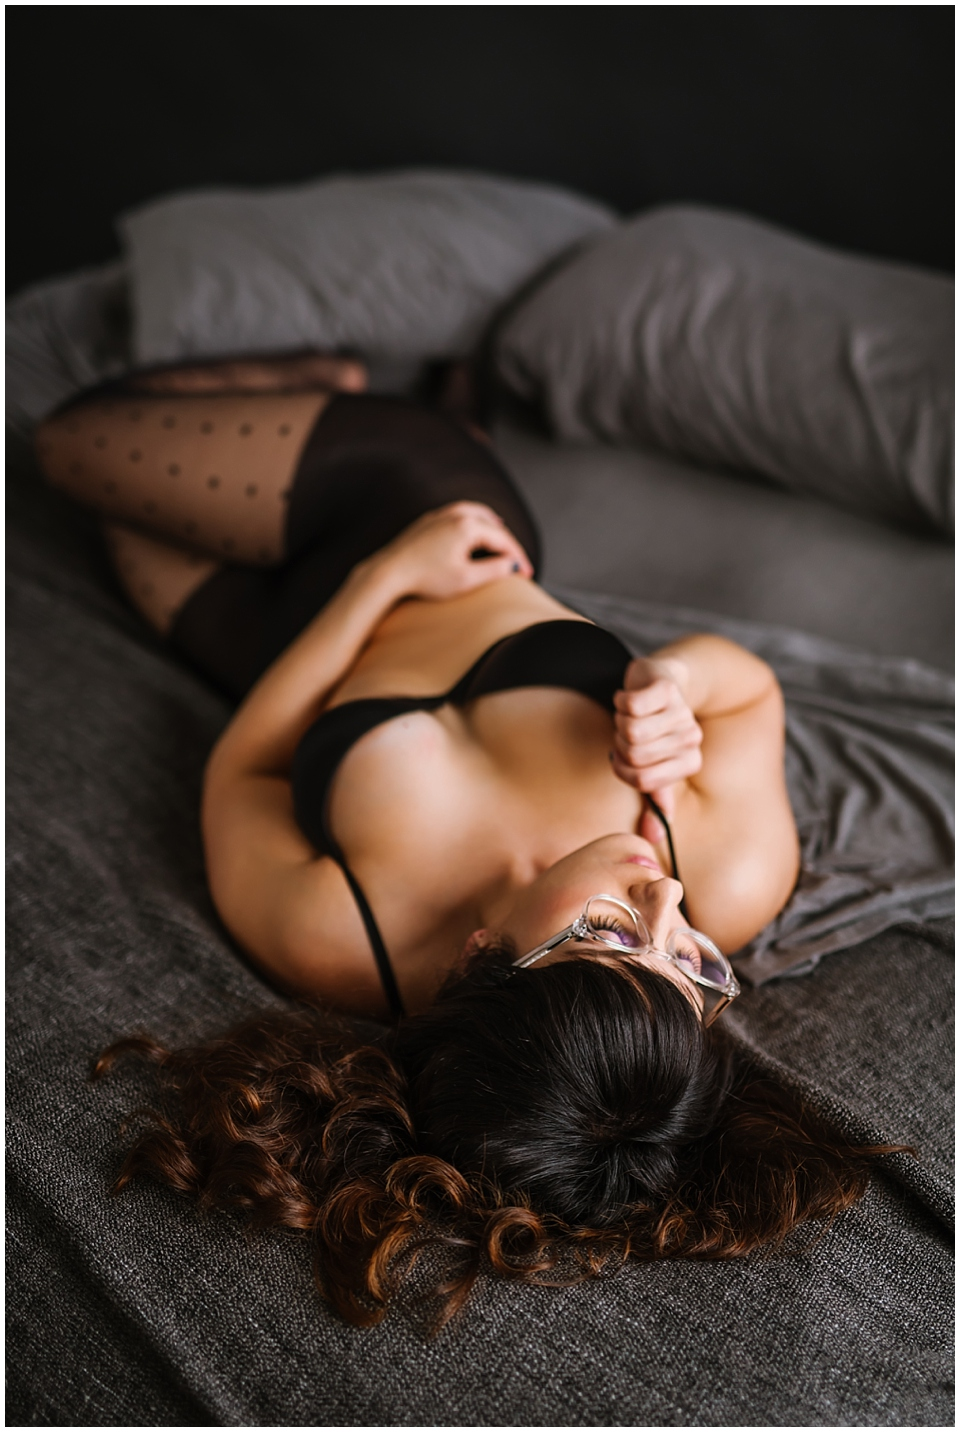 offbeat-boudoir-tampa-photography-studio-4.jpg